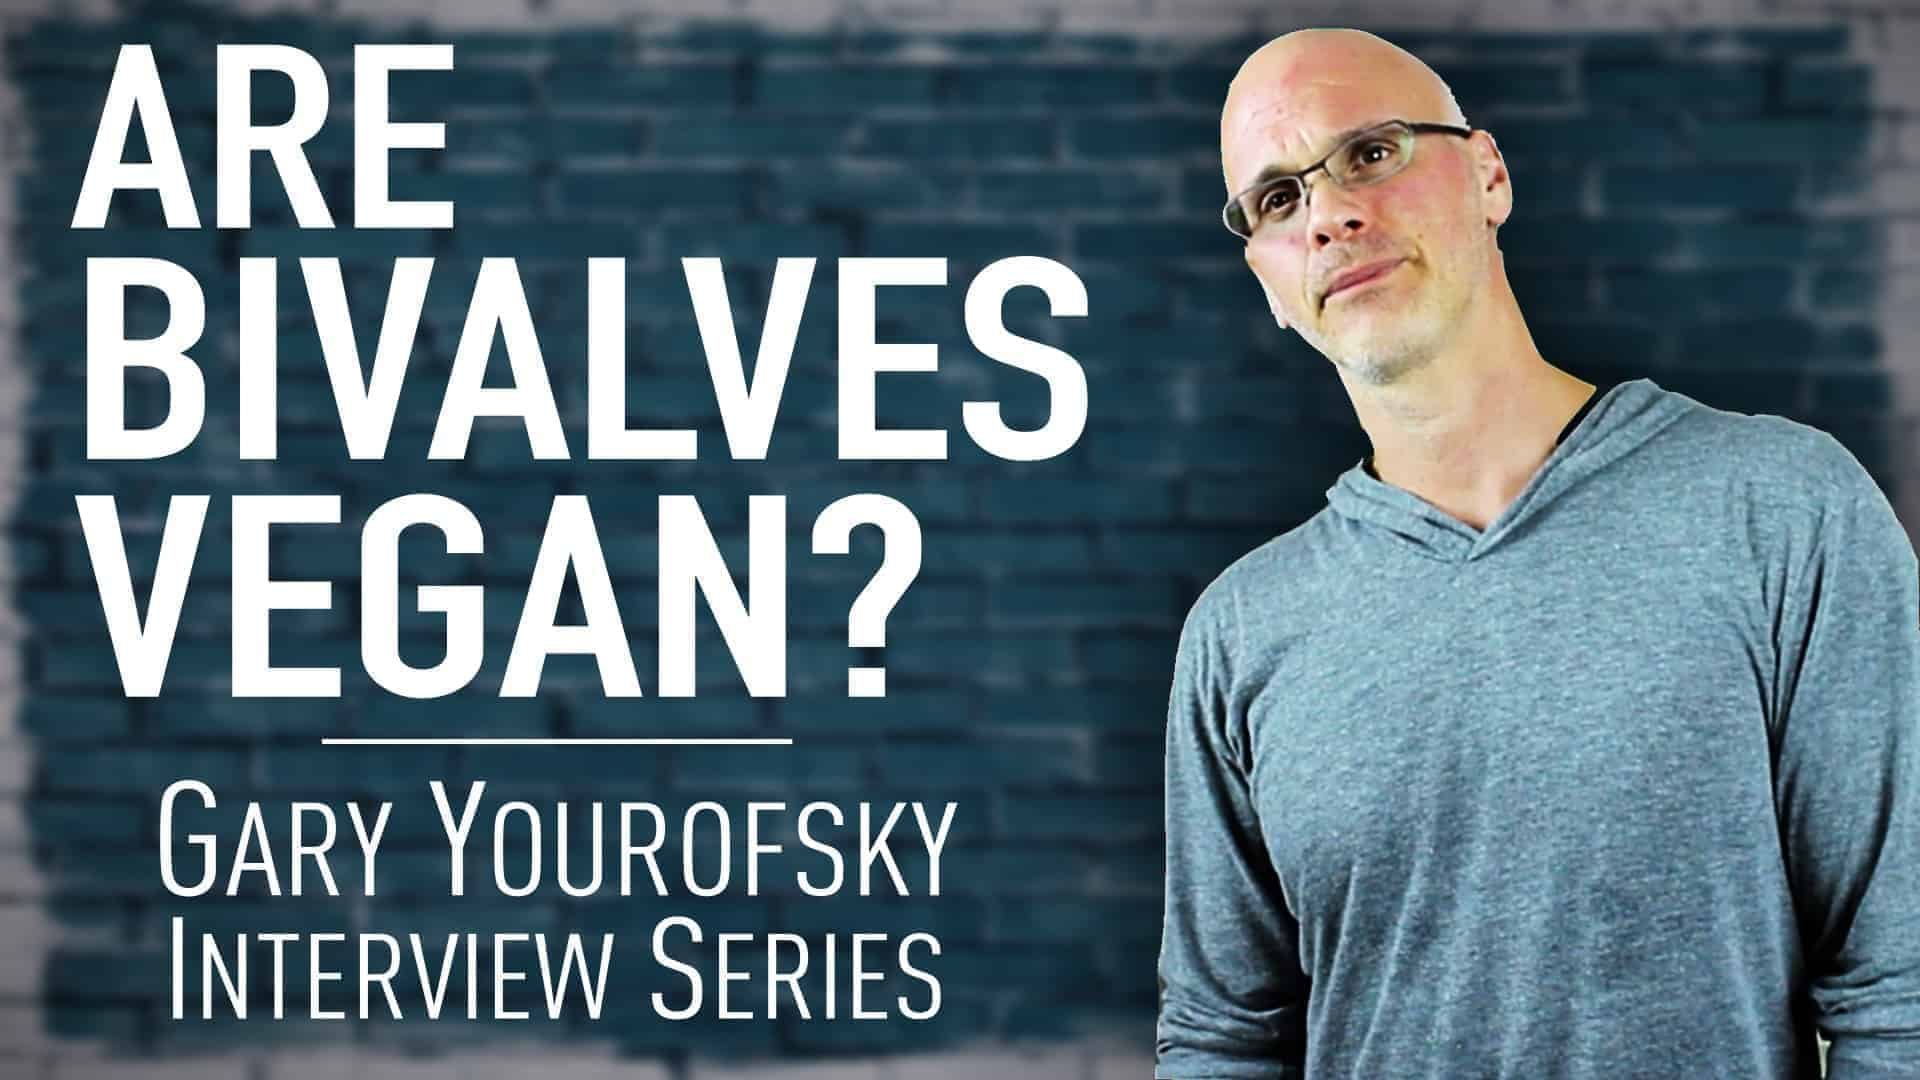 """Author and vegan activist Gary Yourofsky is shown along side the words """"Are bivalves vegan - Gary Yourofsky interview series"""""""